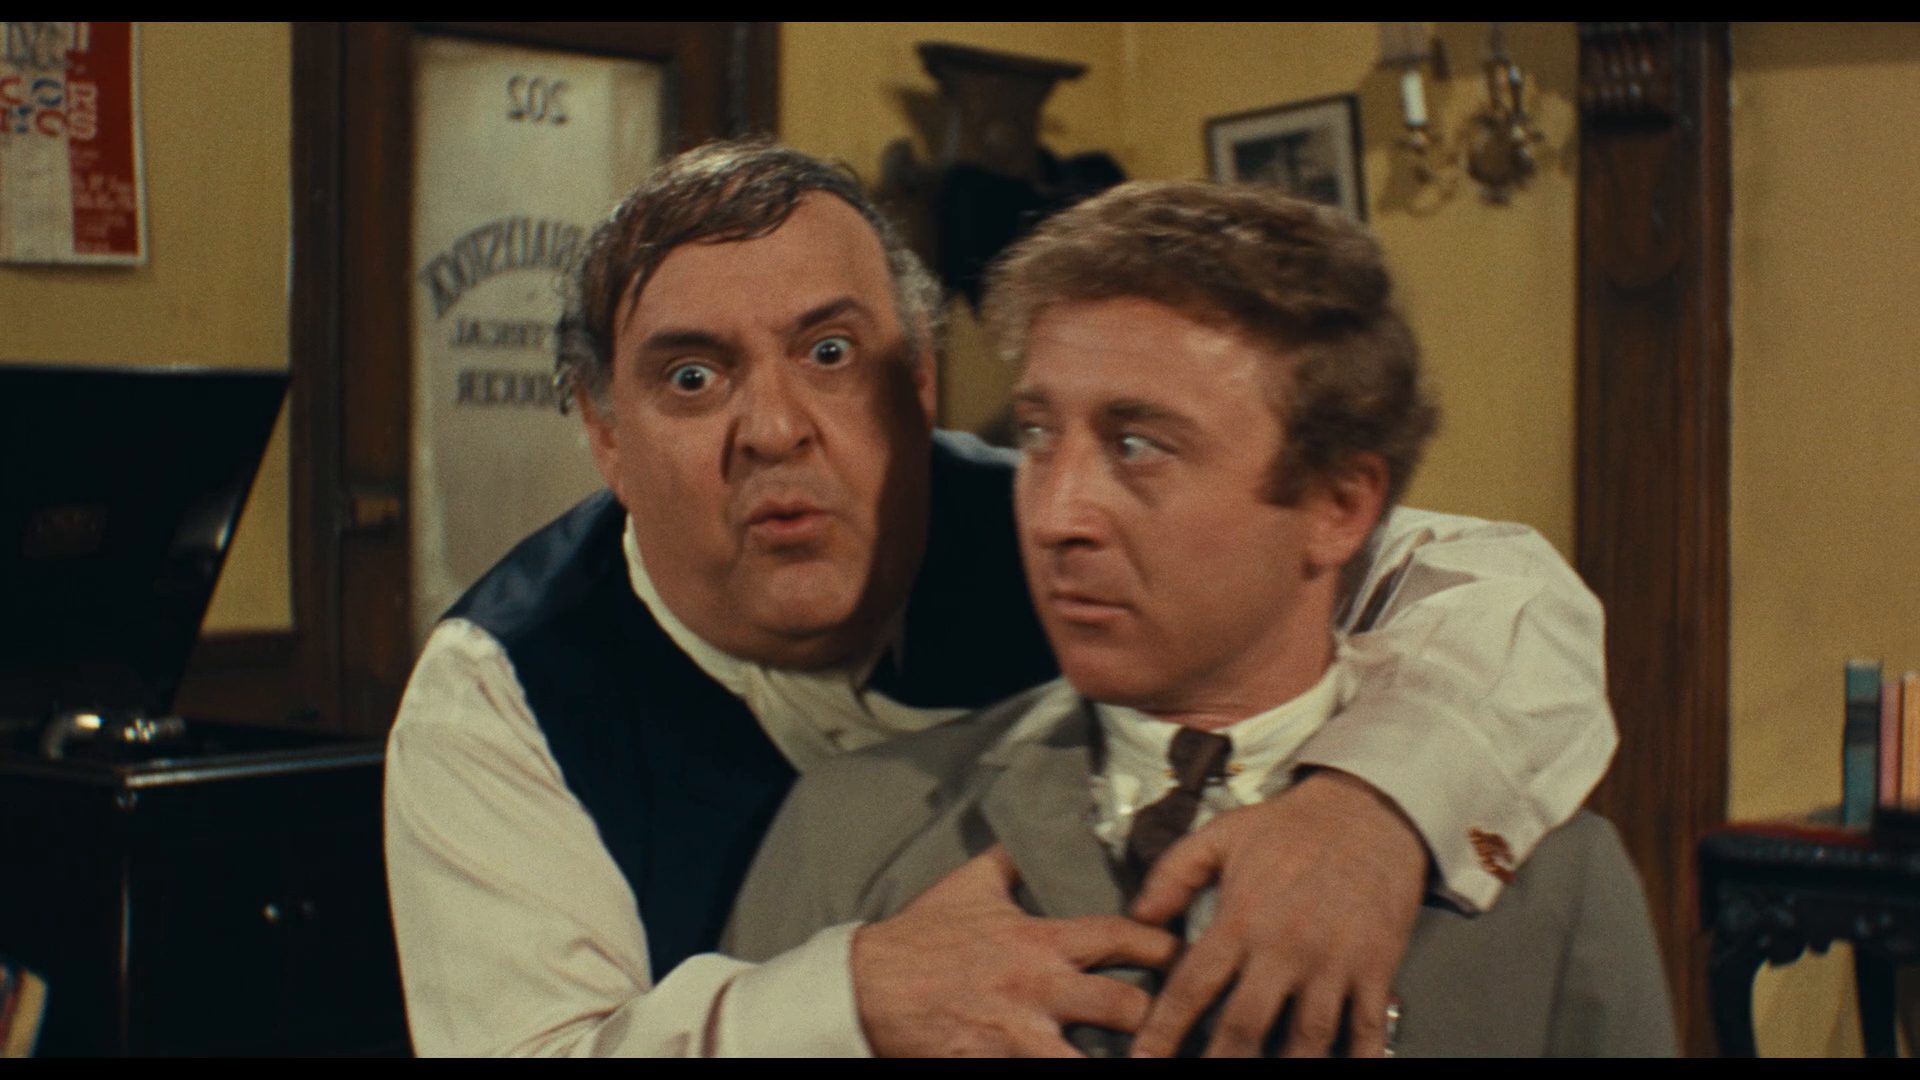 The Producers 1967 BluRay REMUX 1080p AVC DTS-HD MA 5.1 - KRaLiMaRKo